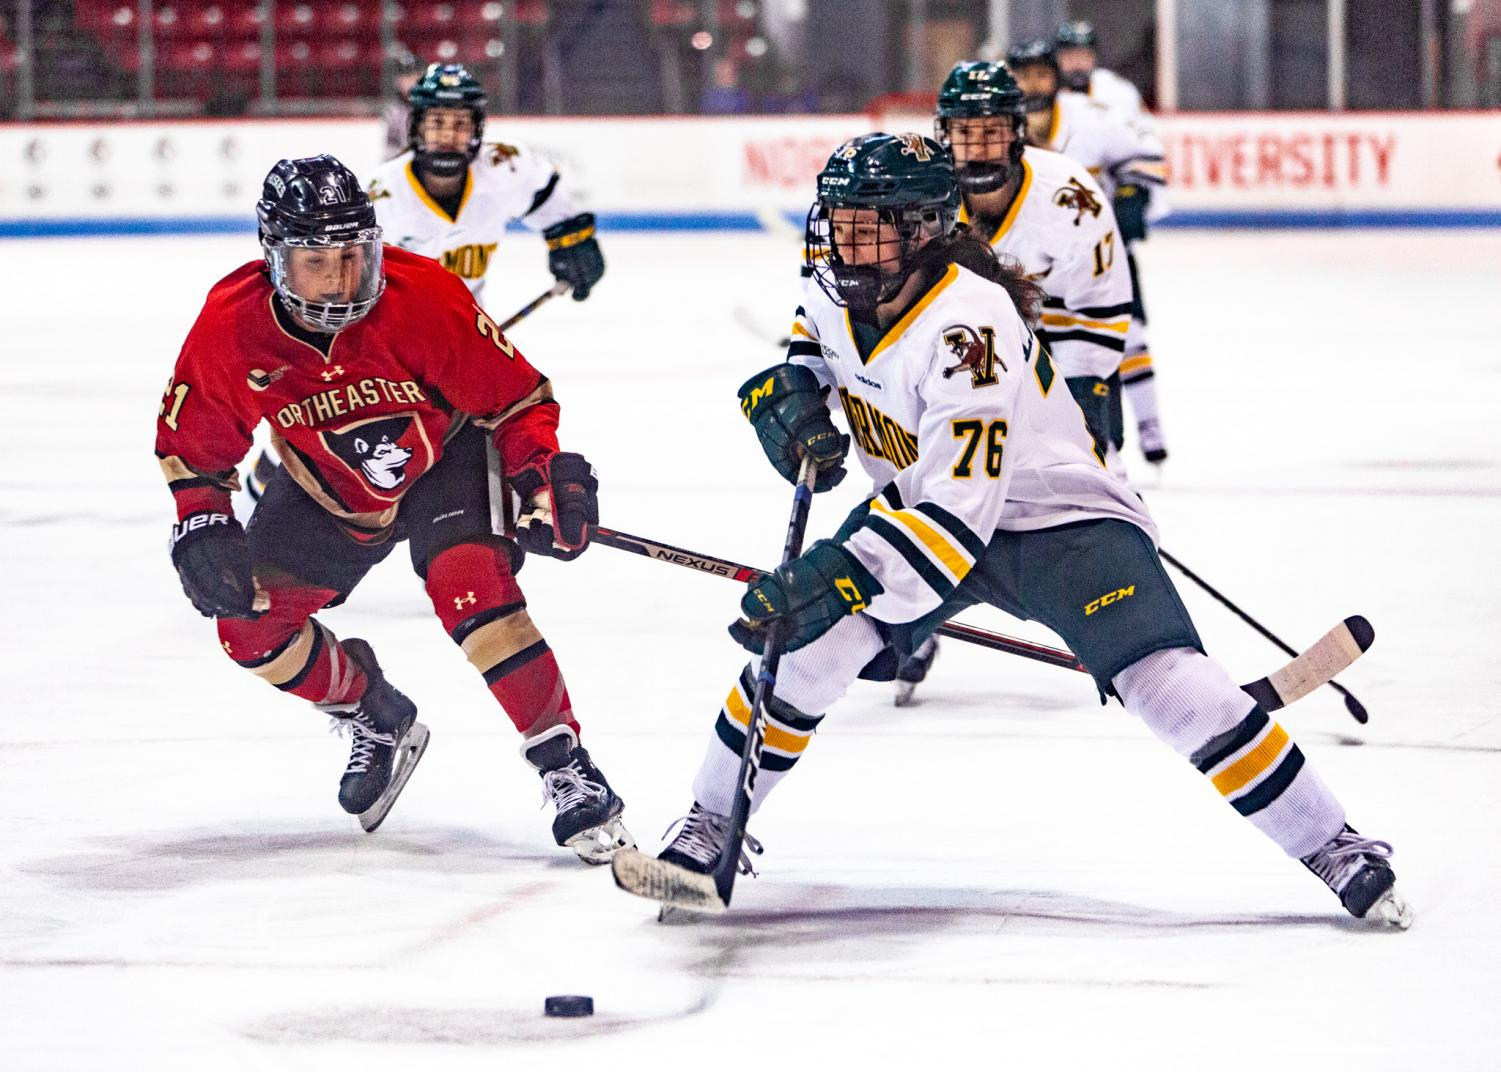 Junior defender Paige Capistran pressures Vermont defender Maude Poulin-Labelle as she controls the puck in a prior game. The two teams will face off this weekend in the Hockey East playoffs.